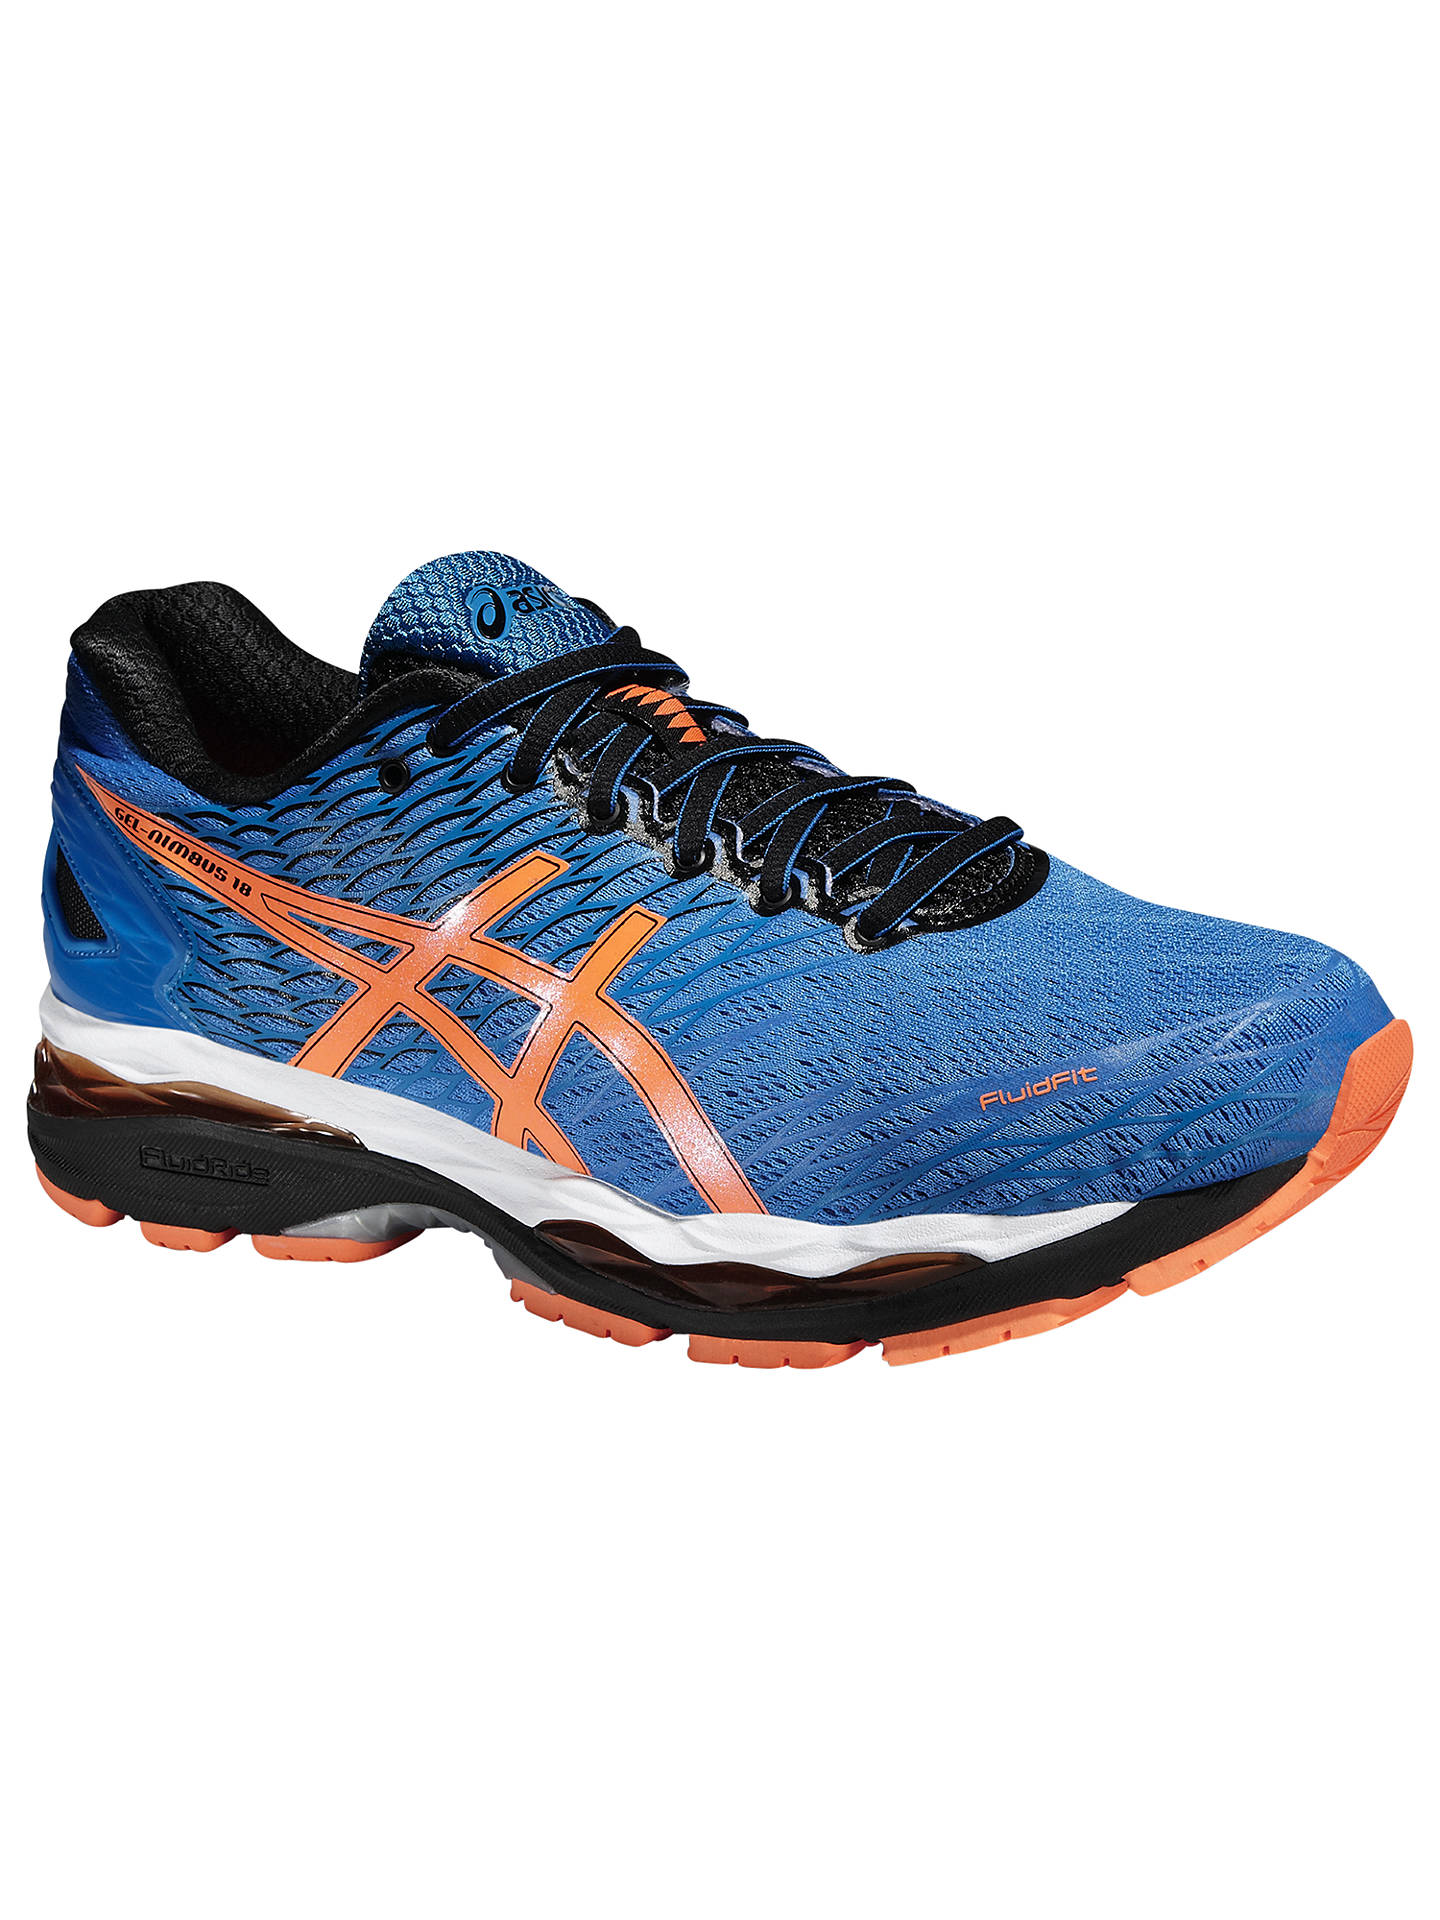 1135bcf4b036 Buy Asics Gel Nimbus 18 Men s Running Shoes